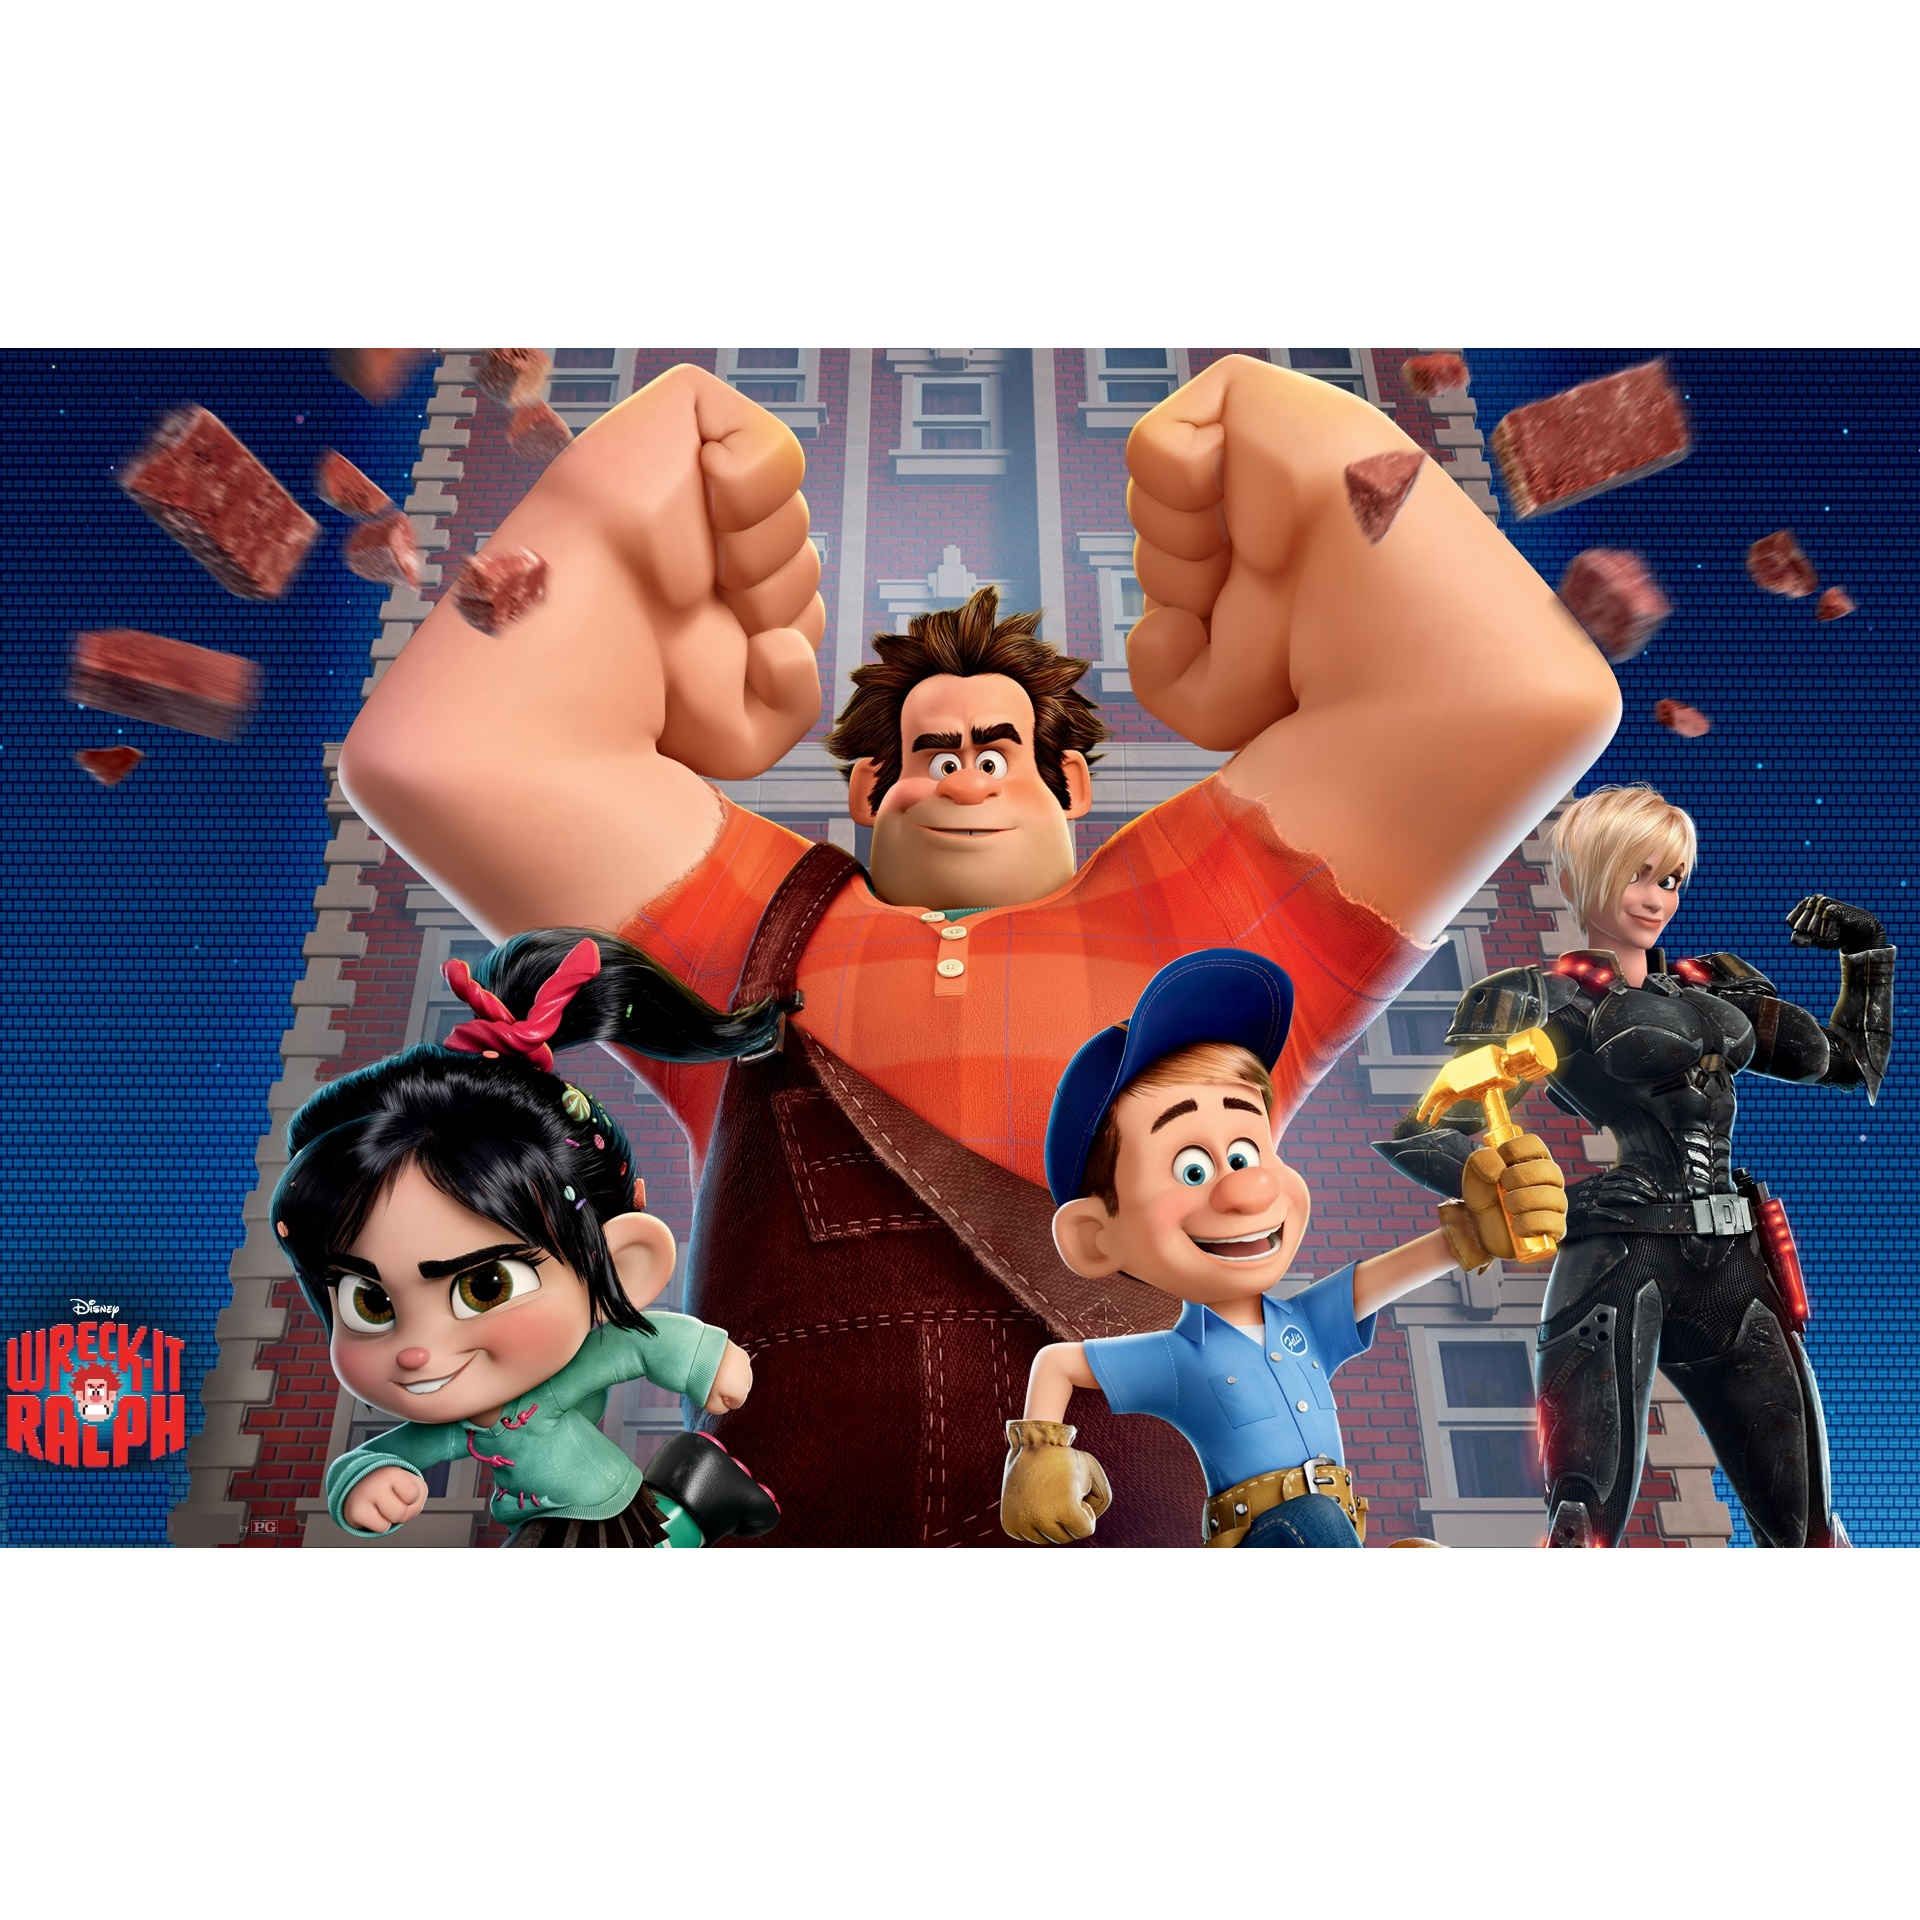 Wreck-It Ralph A4 Cake Icing Image